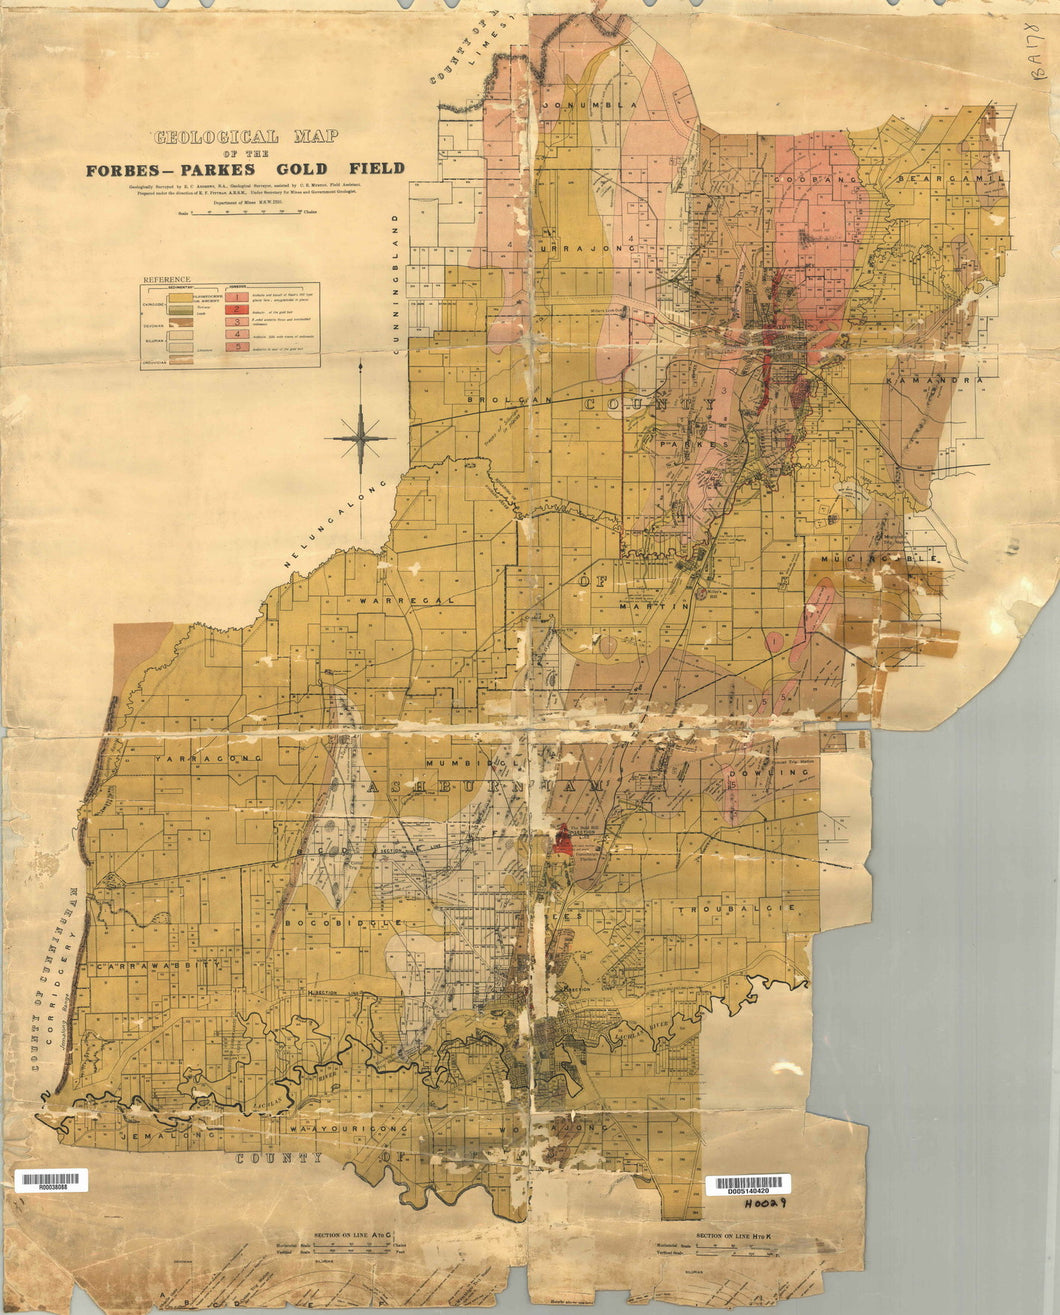 Image of Geological Map of Forbes   Parkes Gold Field, 1910  map